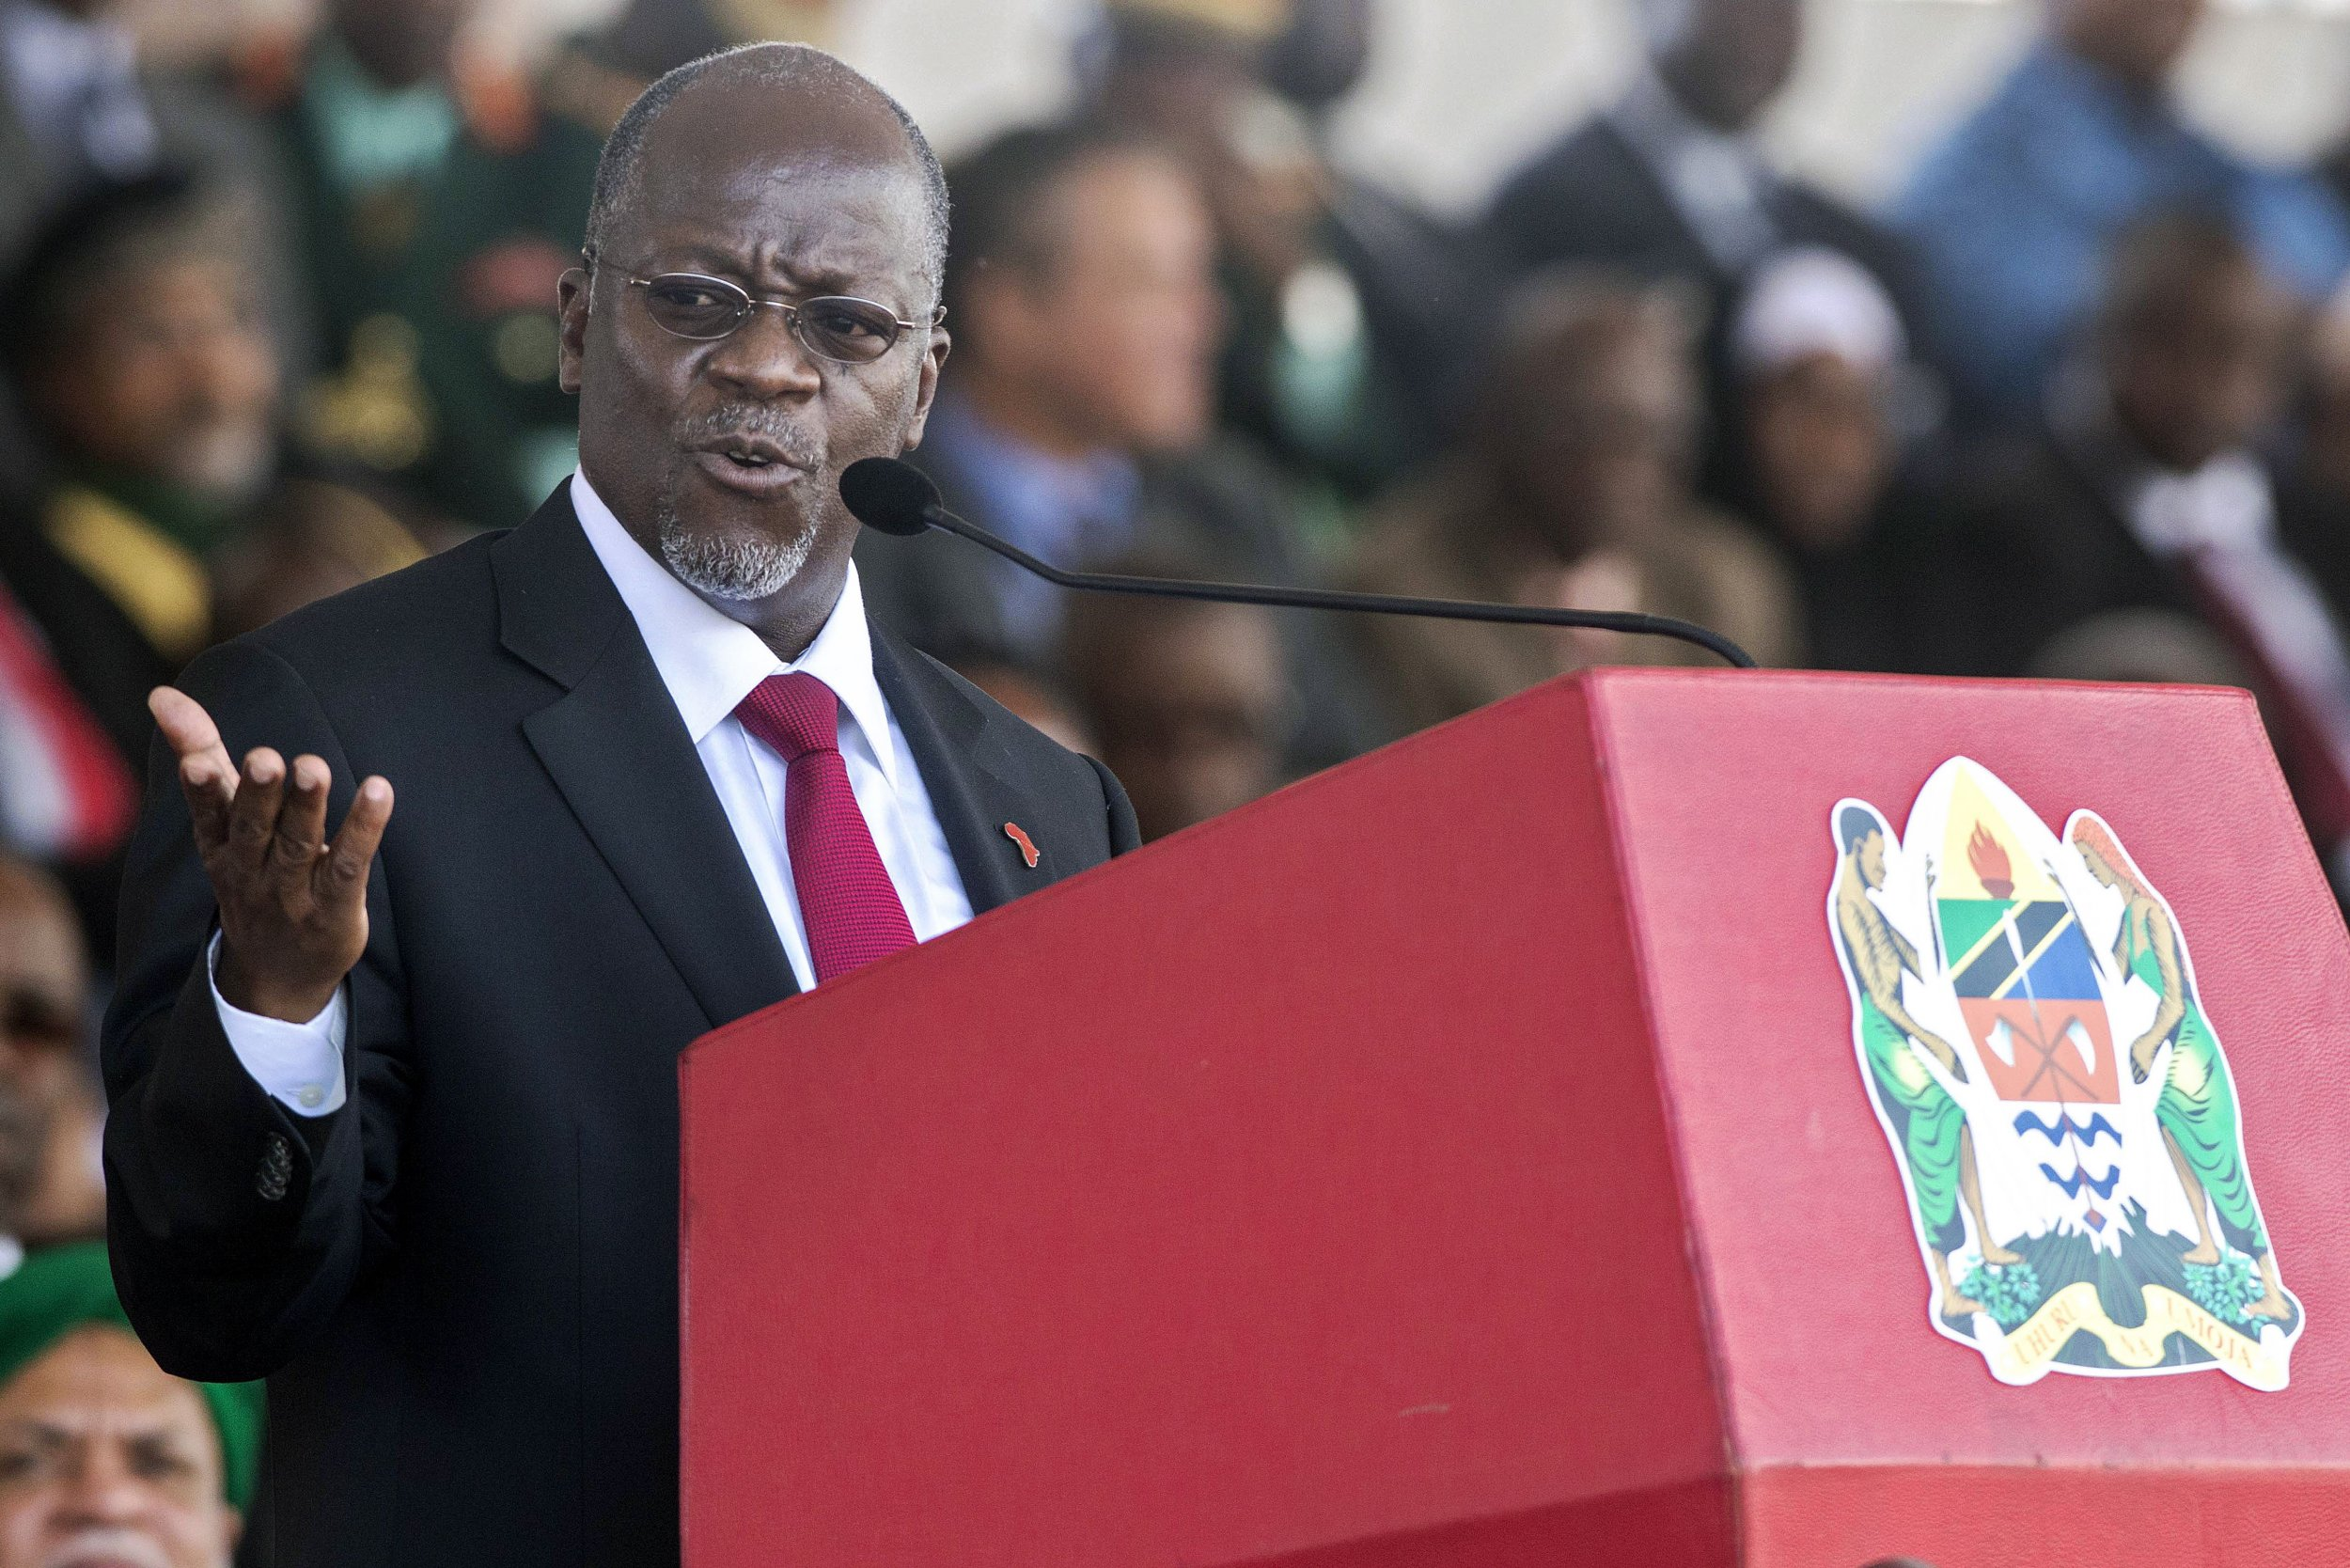 Tanzanian President John Magufuli speaks at his swearing in ceremony.